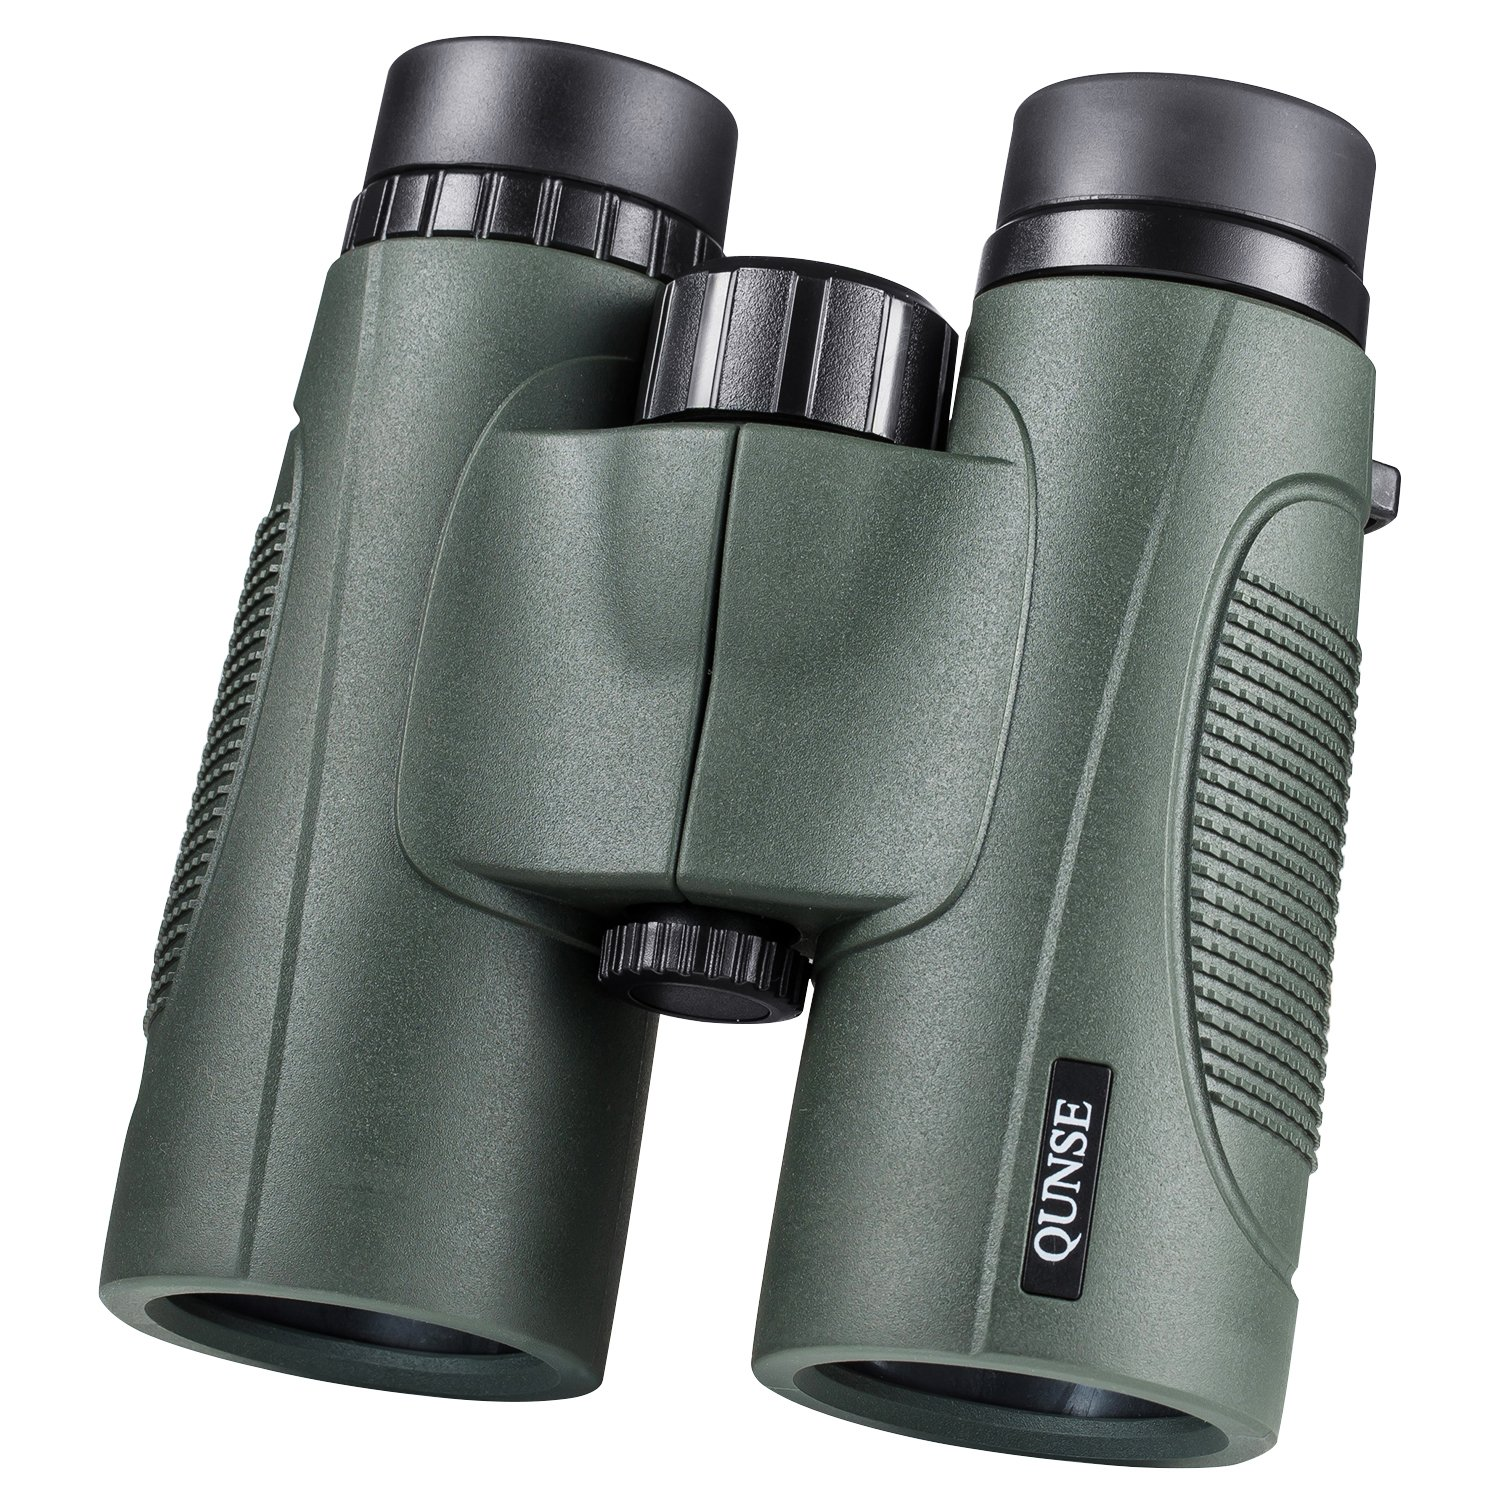 QUNSE 10x42 Binoculars for Adults Compact,BAK4 Prism FMC Lens Powerful Binocular with Phone Adapter,Harness,Wire Shutter and Tripod Adapter for Bird Watching,Safari and Outdoor Games